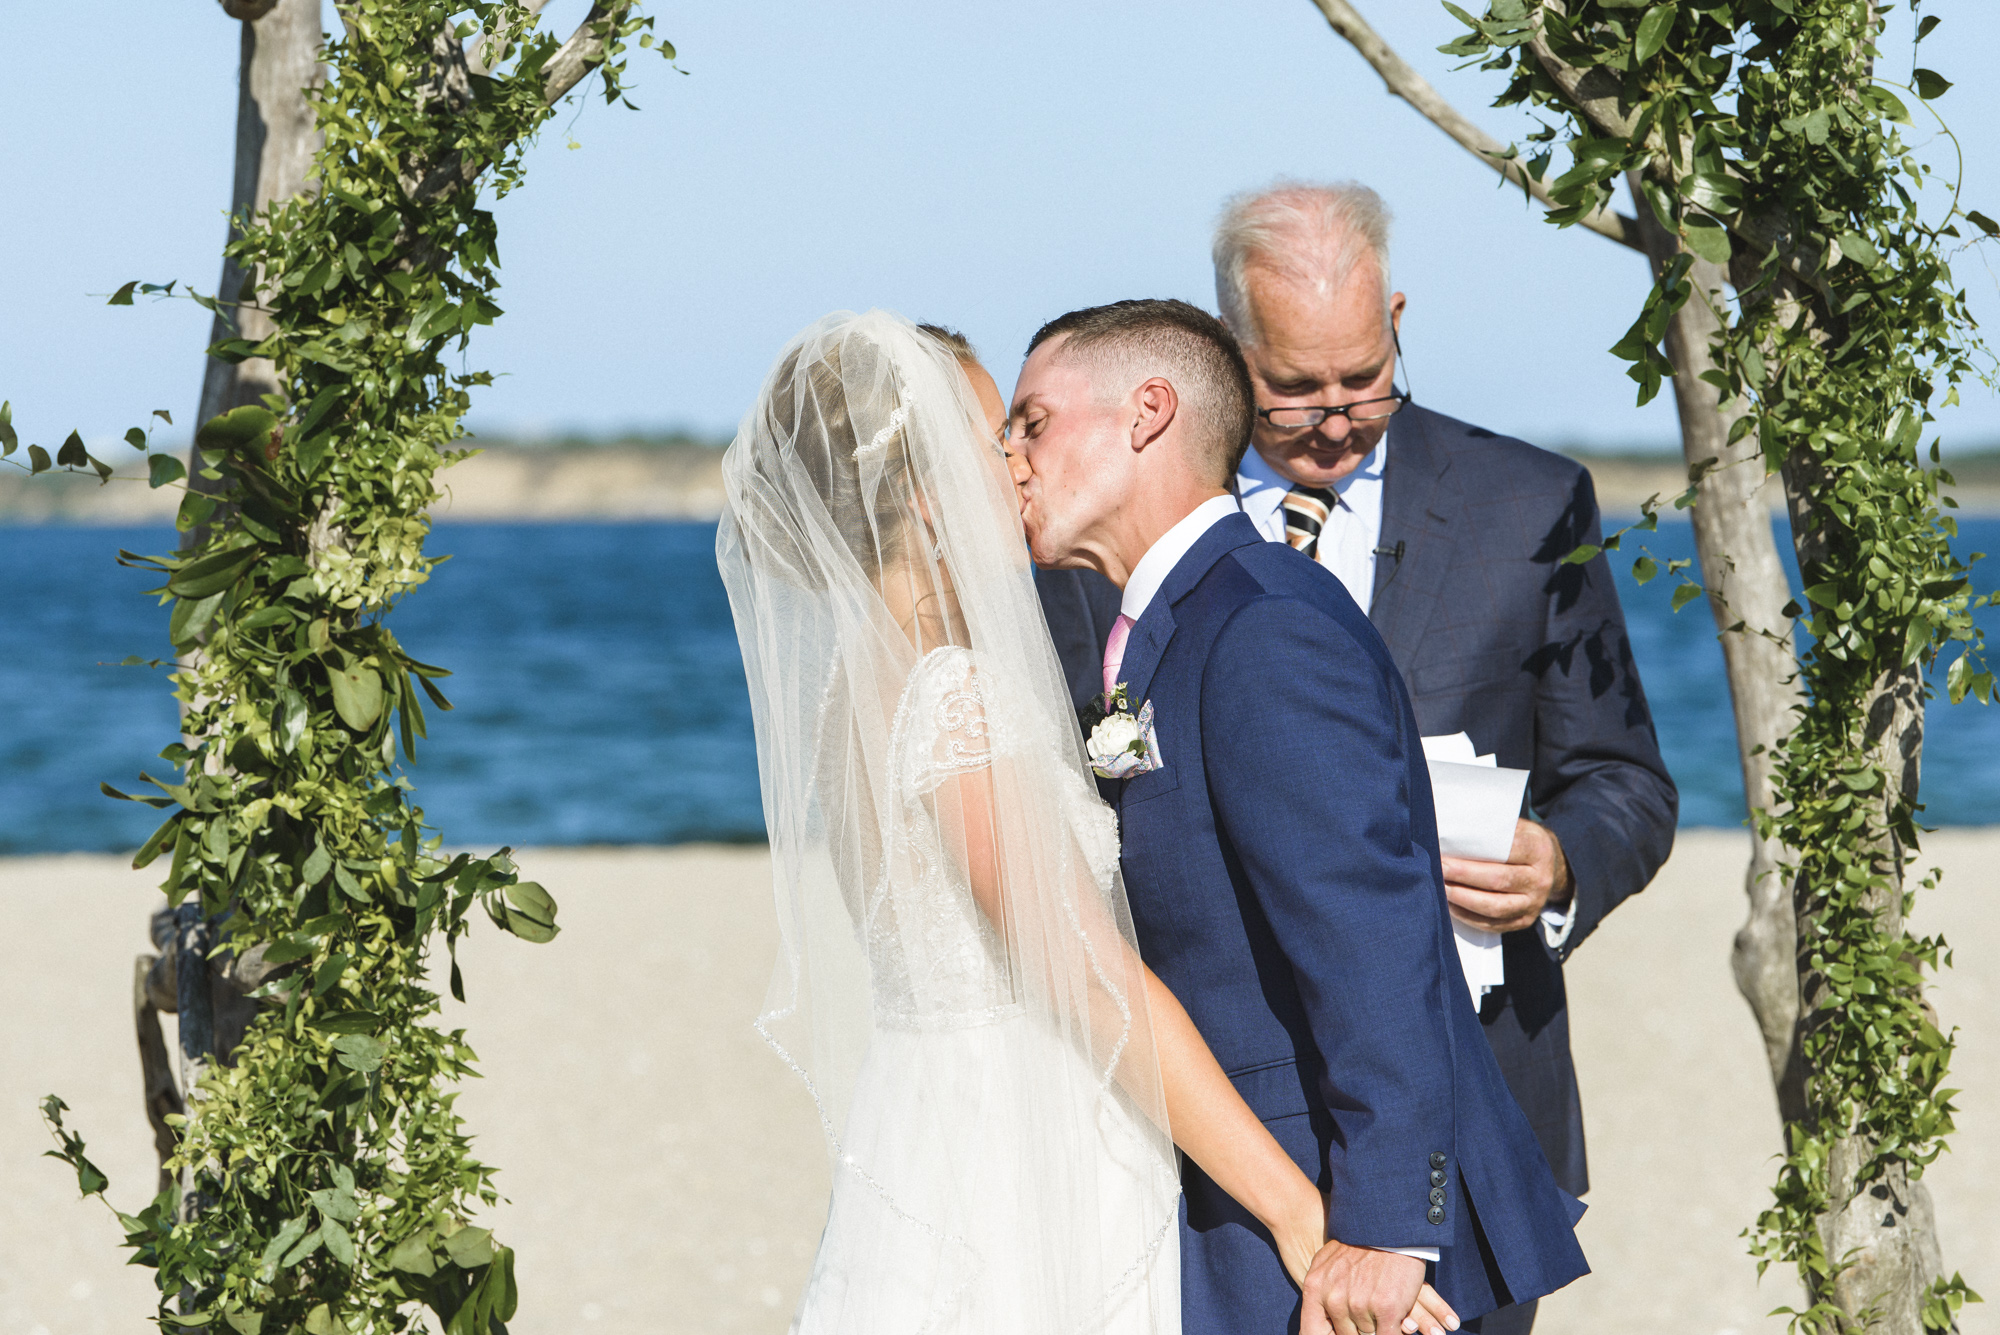 Newlyweds kiss at their wedding ceremony at the Edgartown Lighthouse photo by David Welch Photography